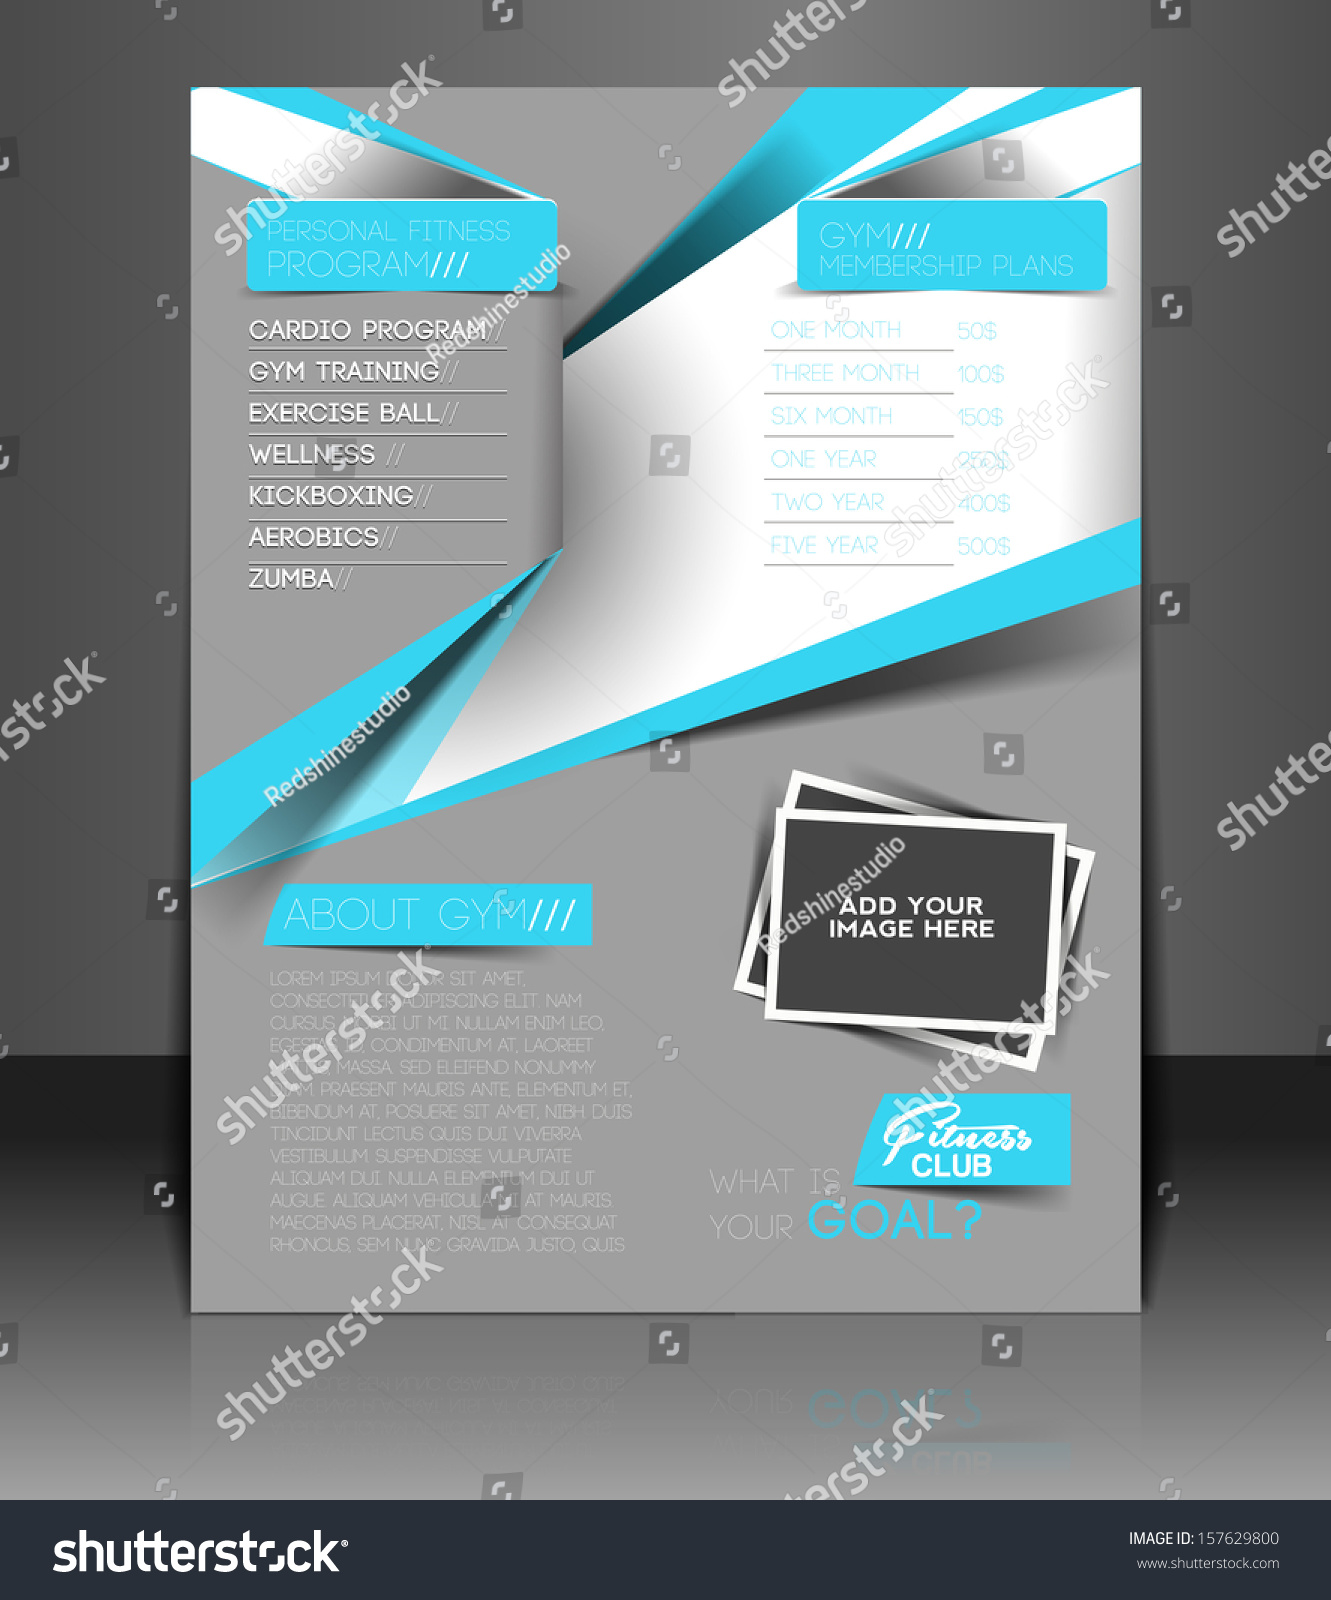 vector fitness center front flyer template stock vector  vector fitness center front flyer template design